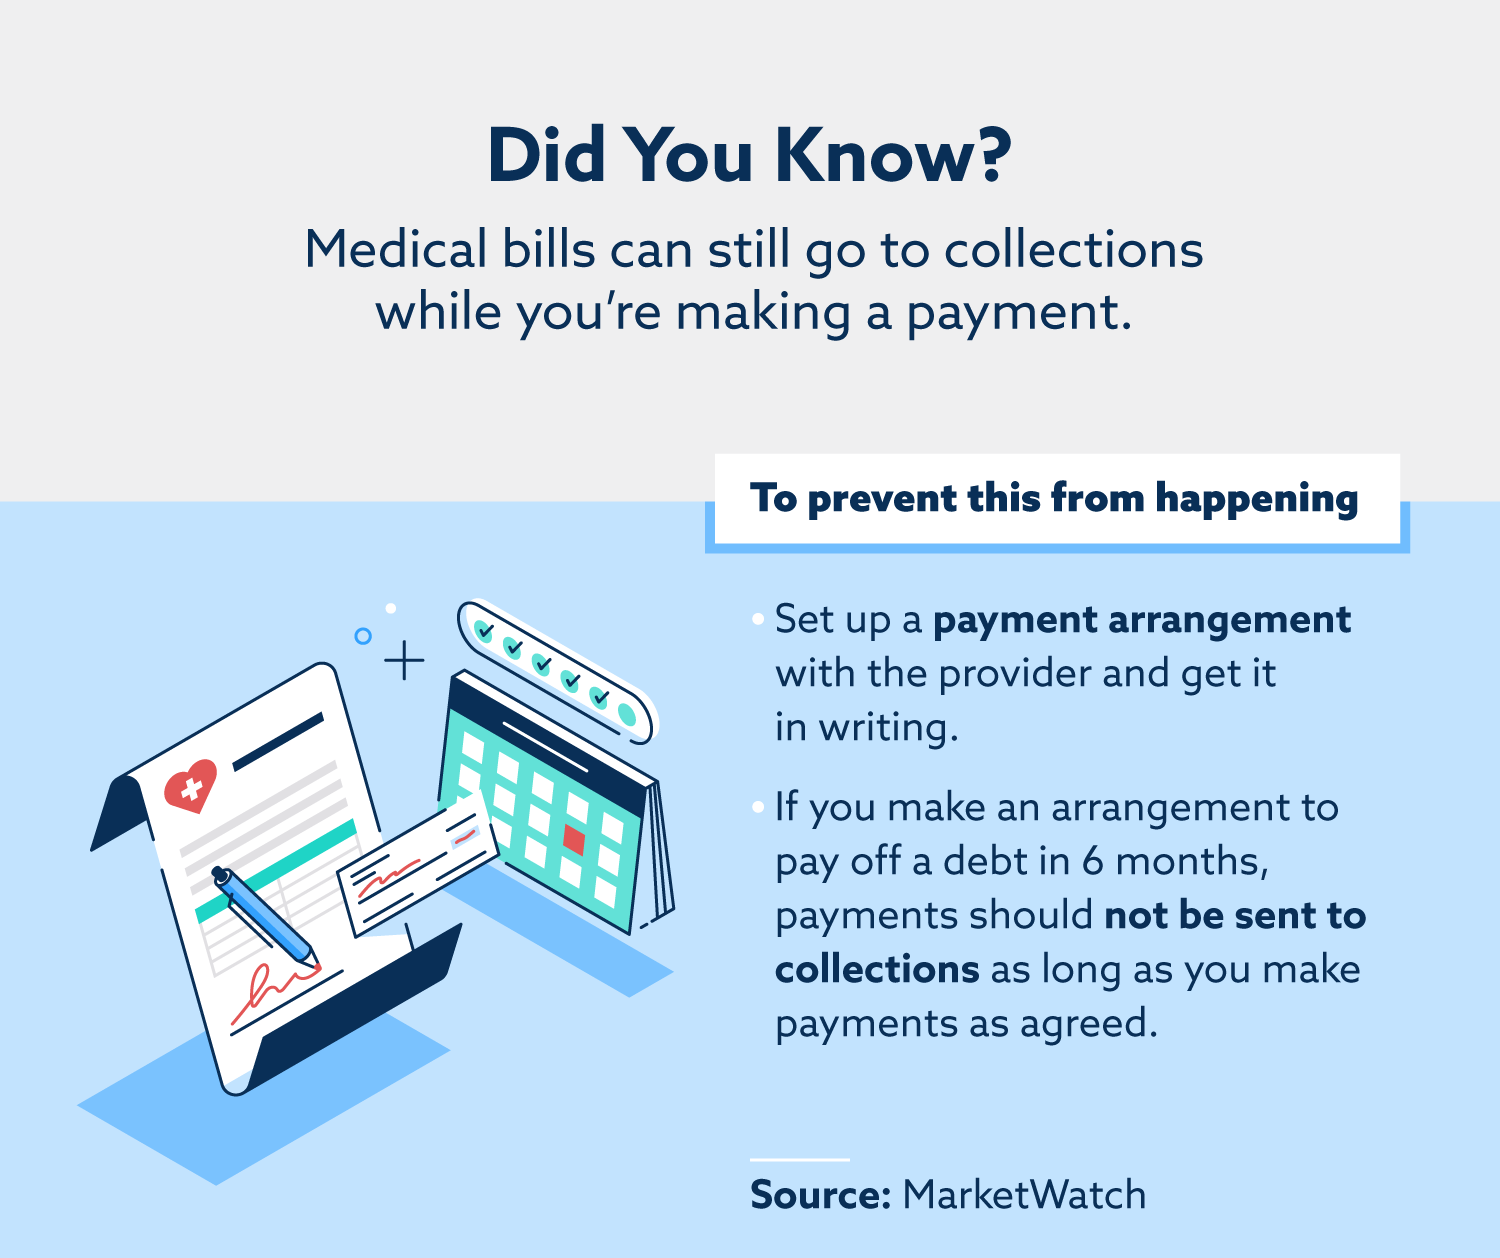 how to prevent medical bills from going to collections